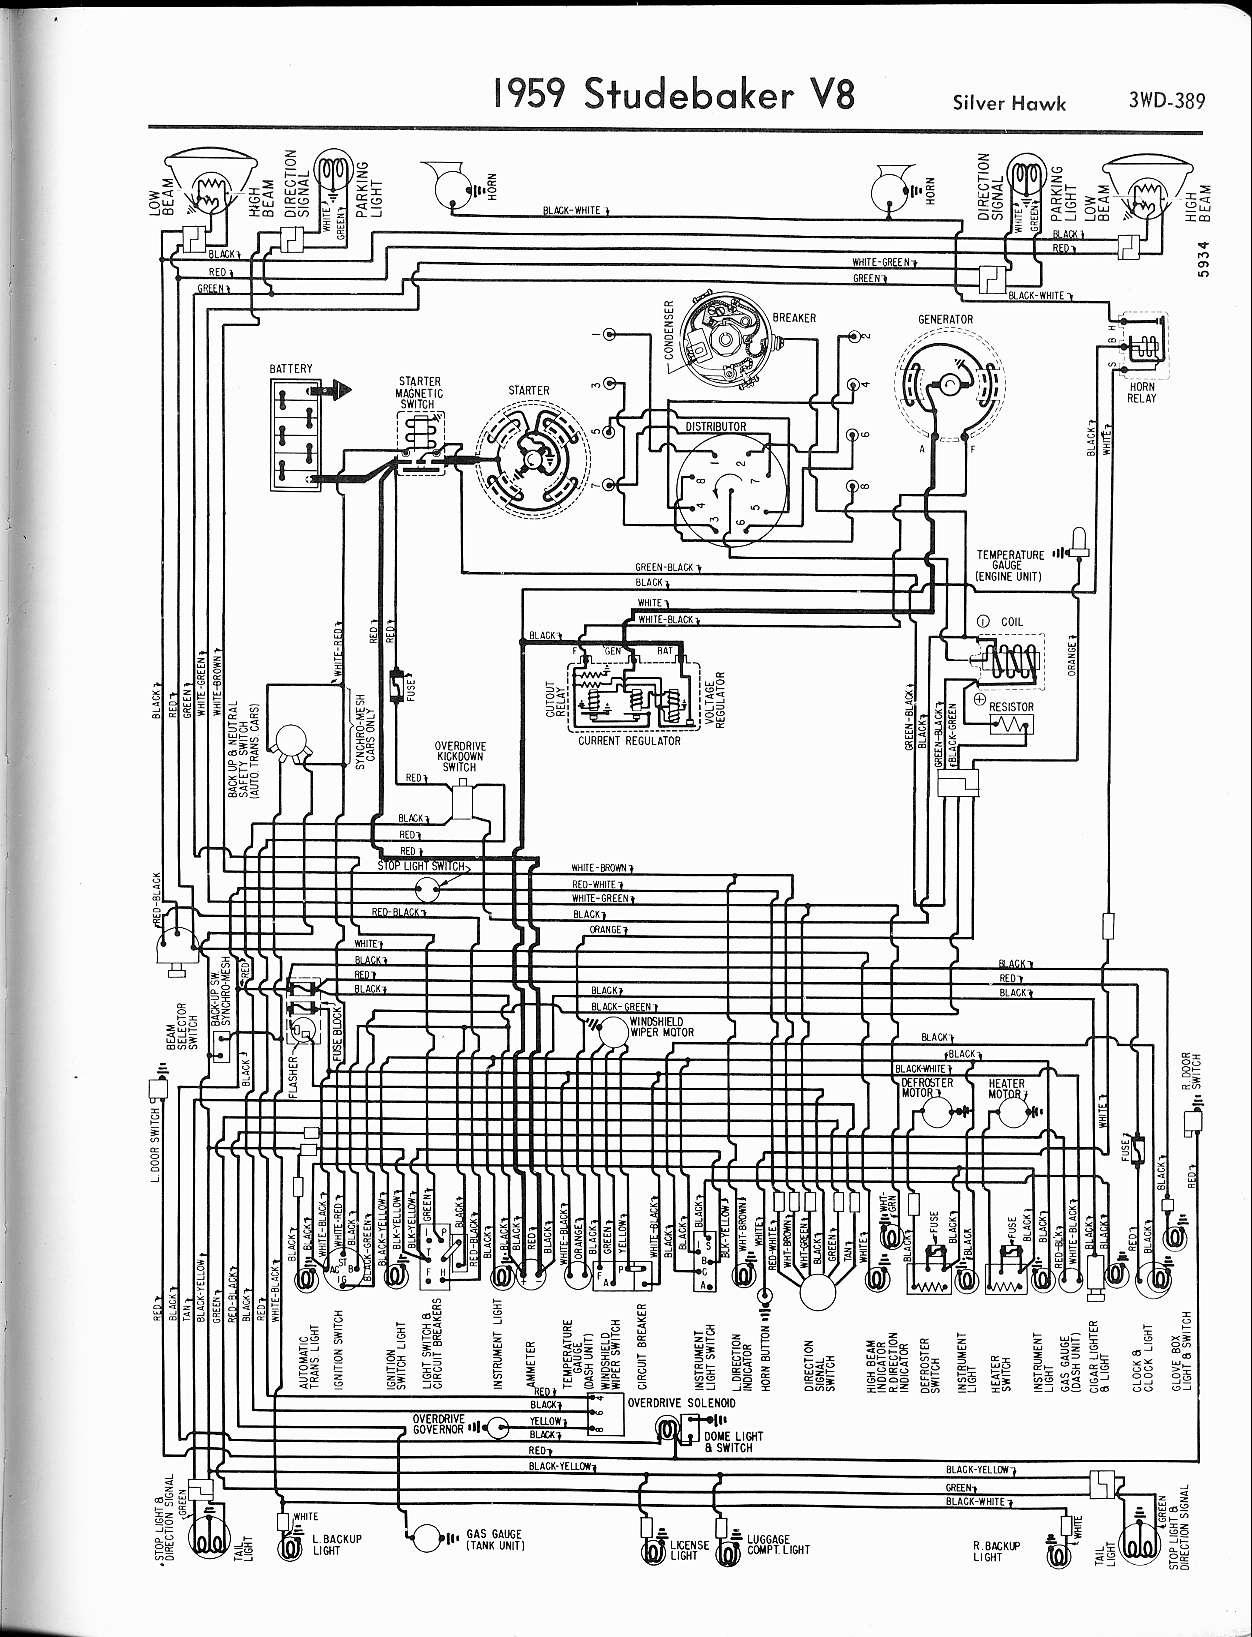 wiring diagram for 1962 studebaker 6 lark